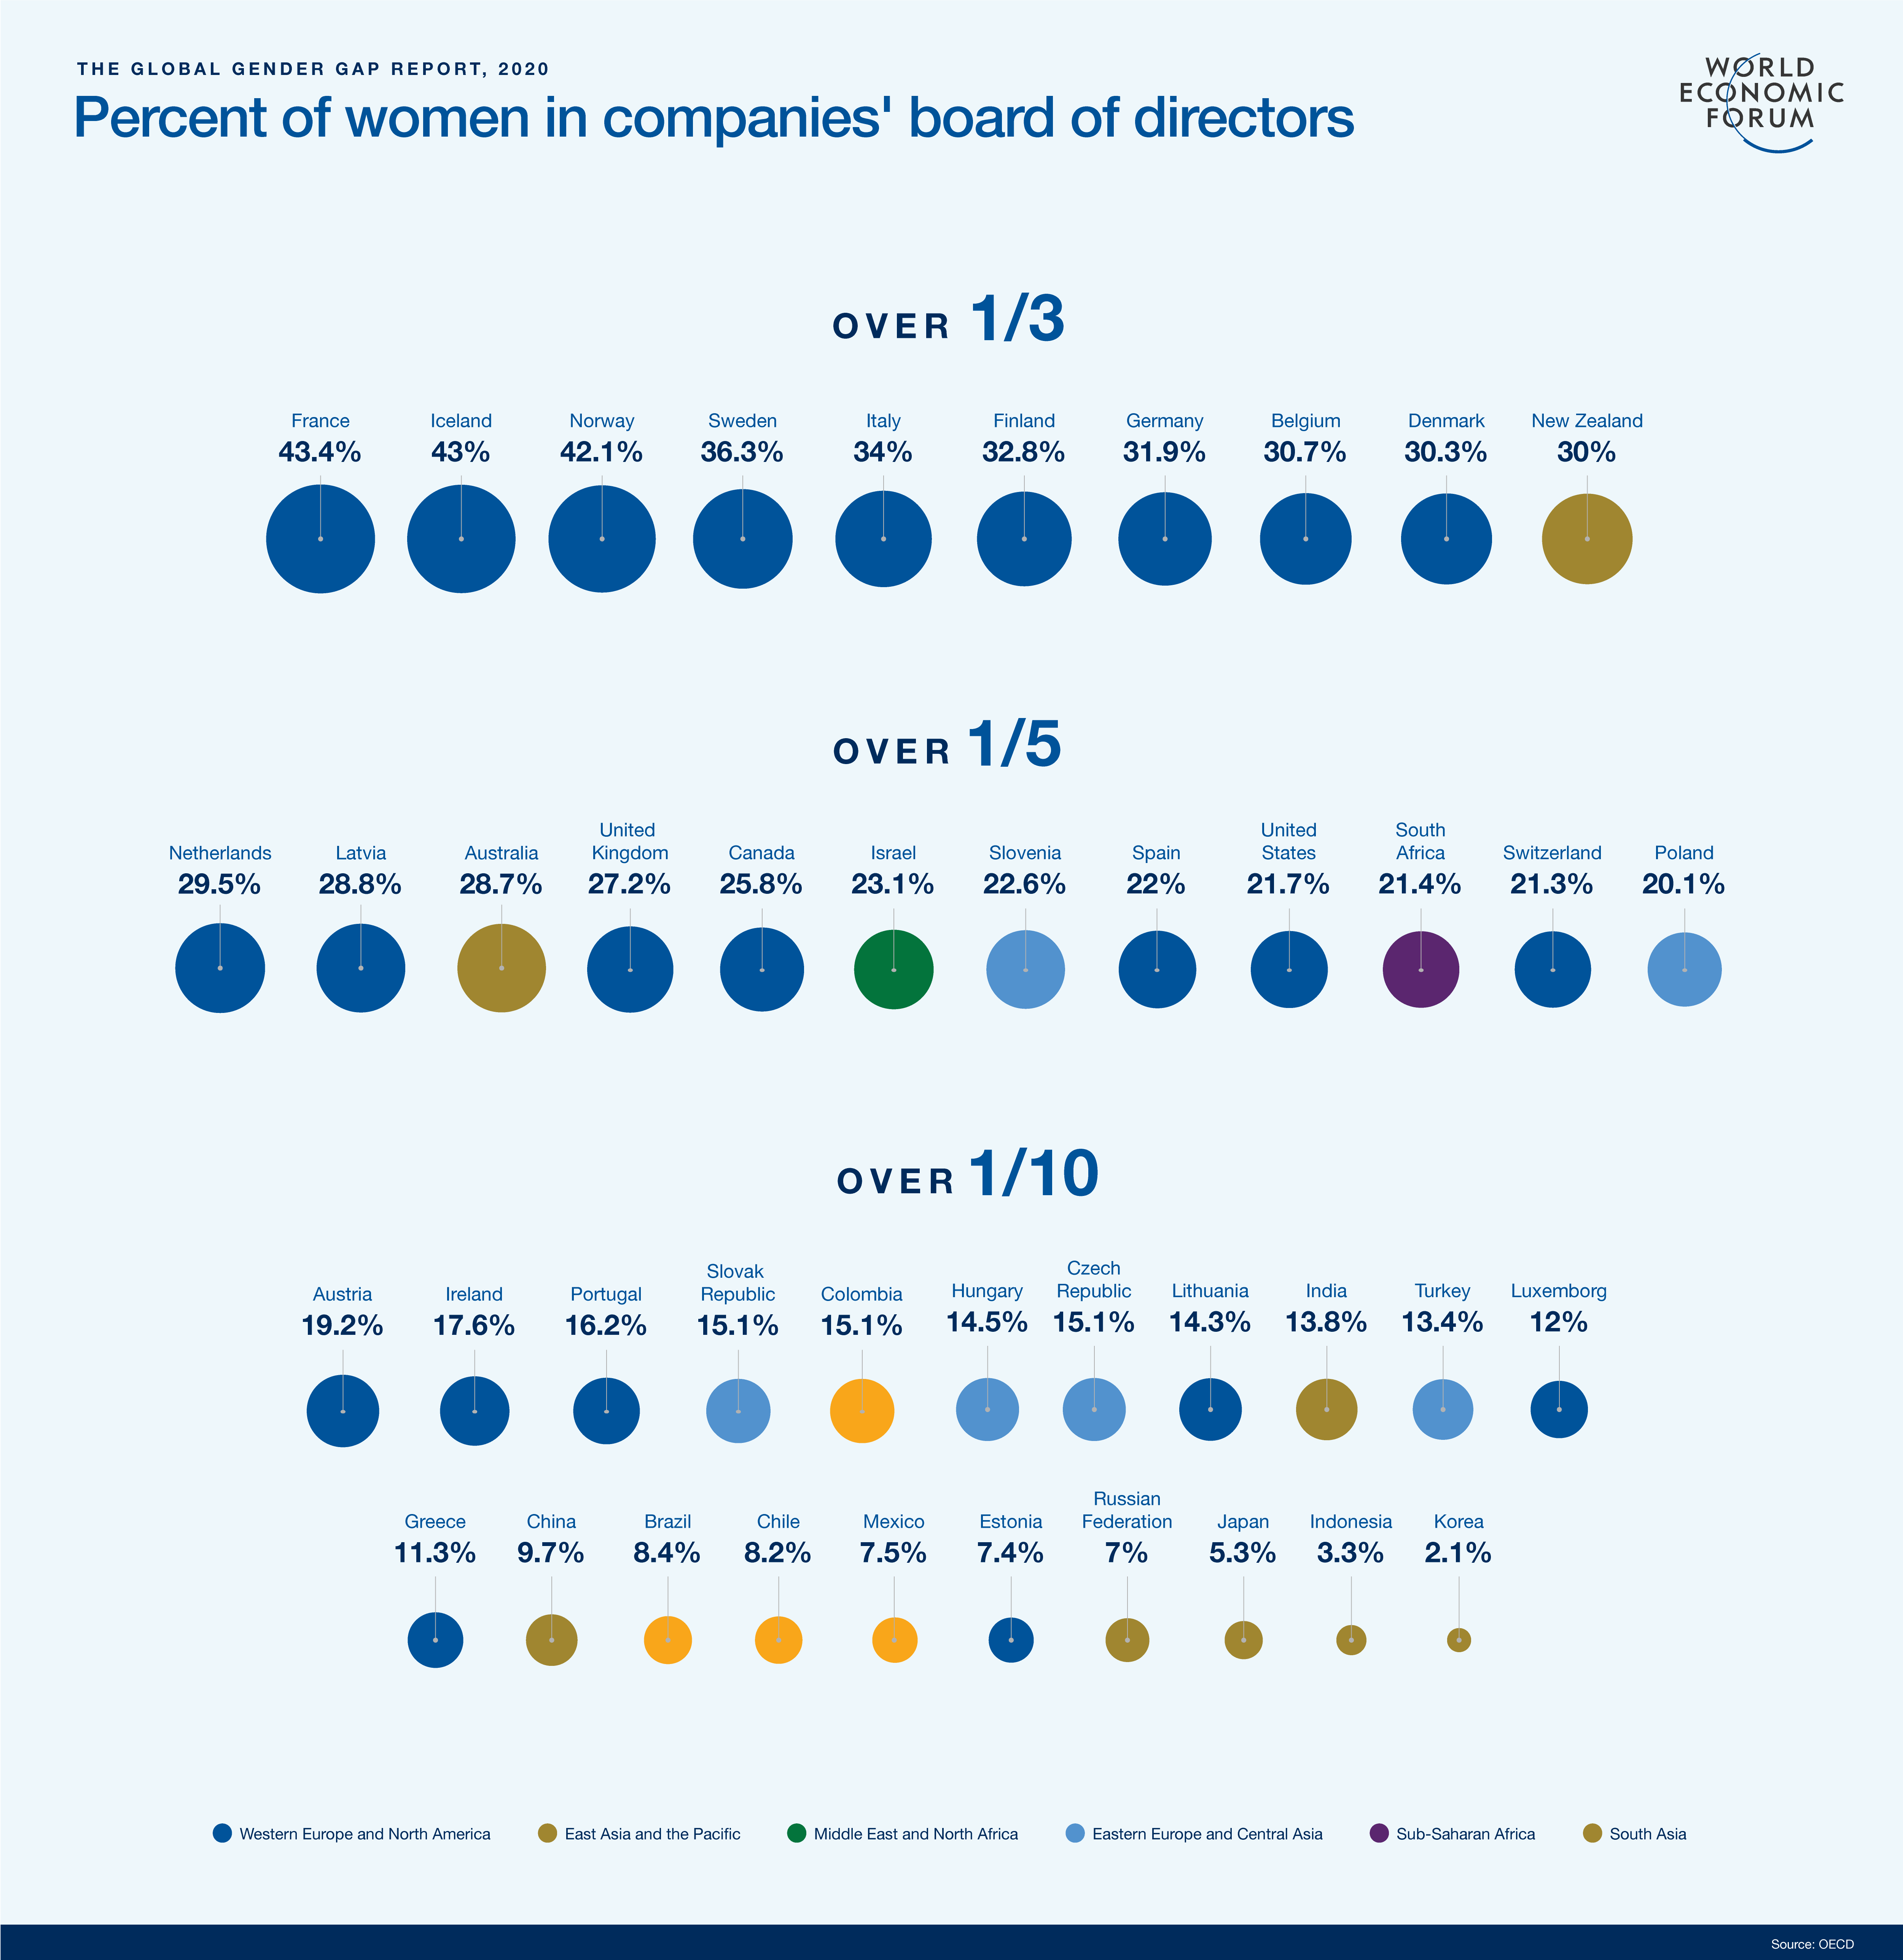 percentage of women board of directors in a company by country - Global Gender Gap Report 2020